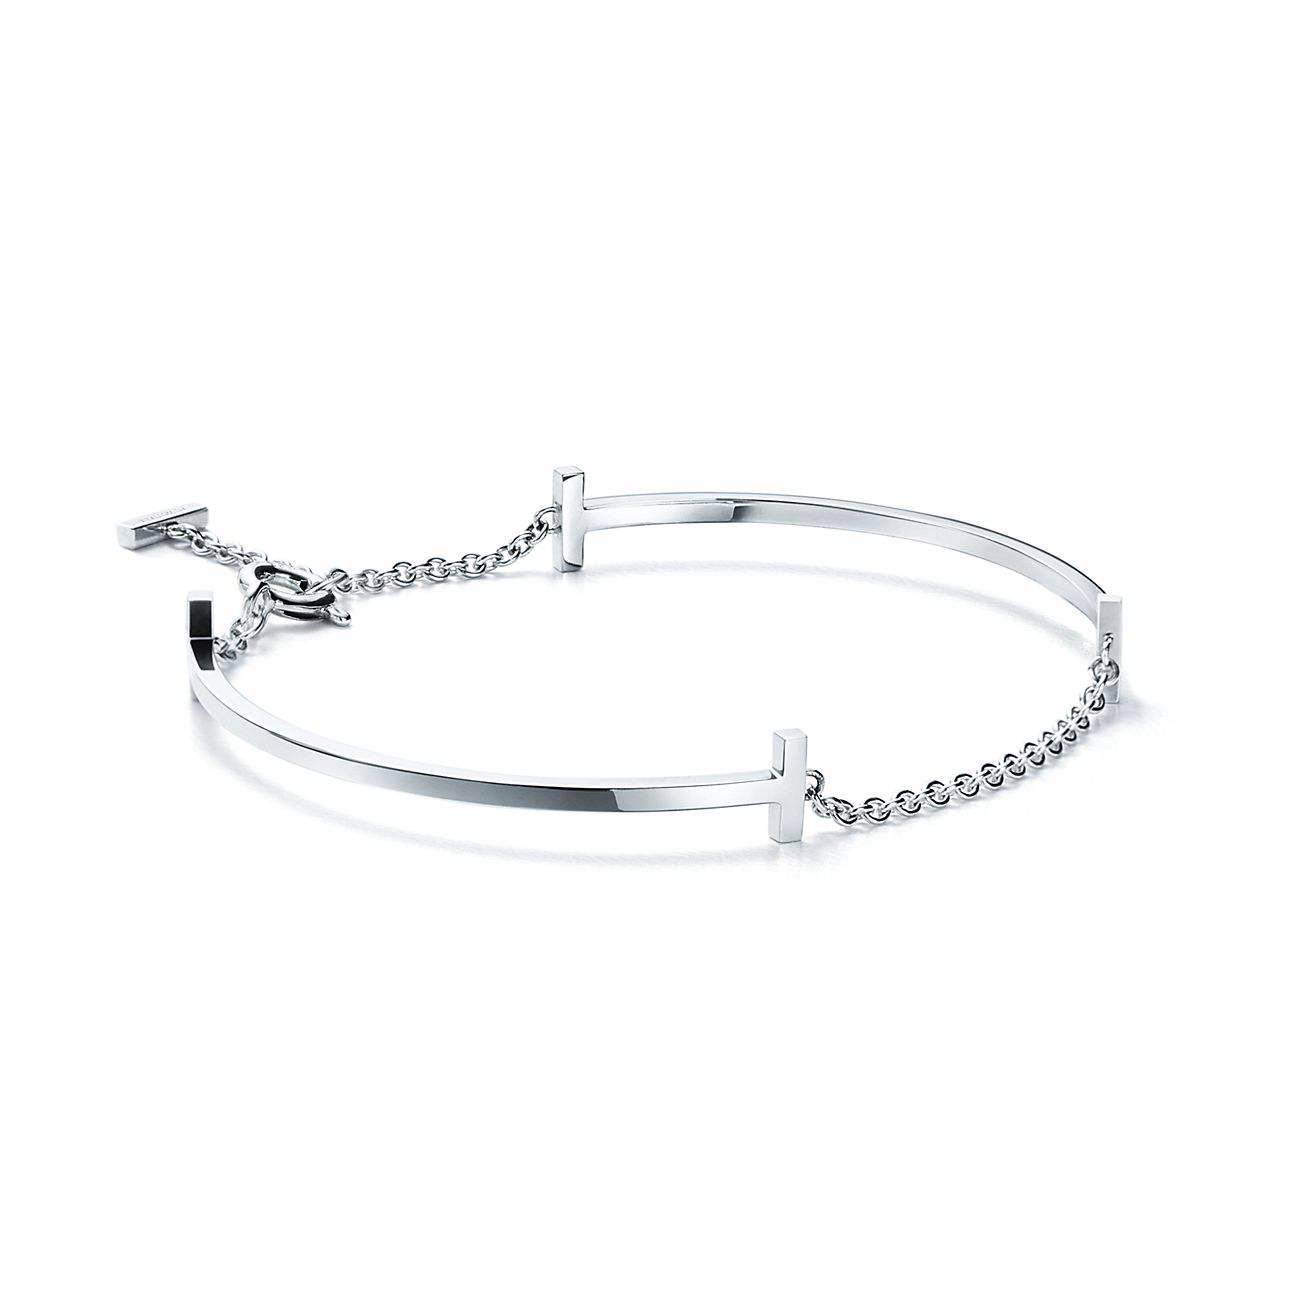 Tiffany T Double Smile Bracelet